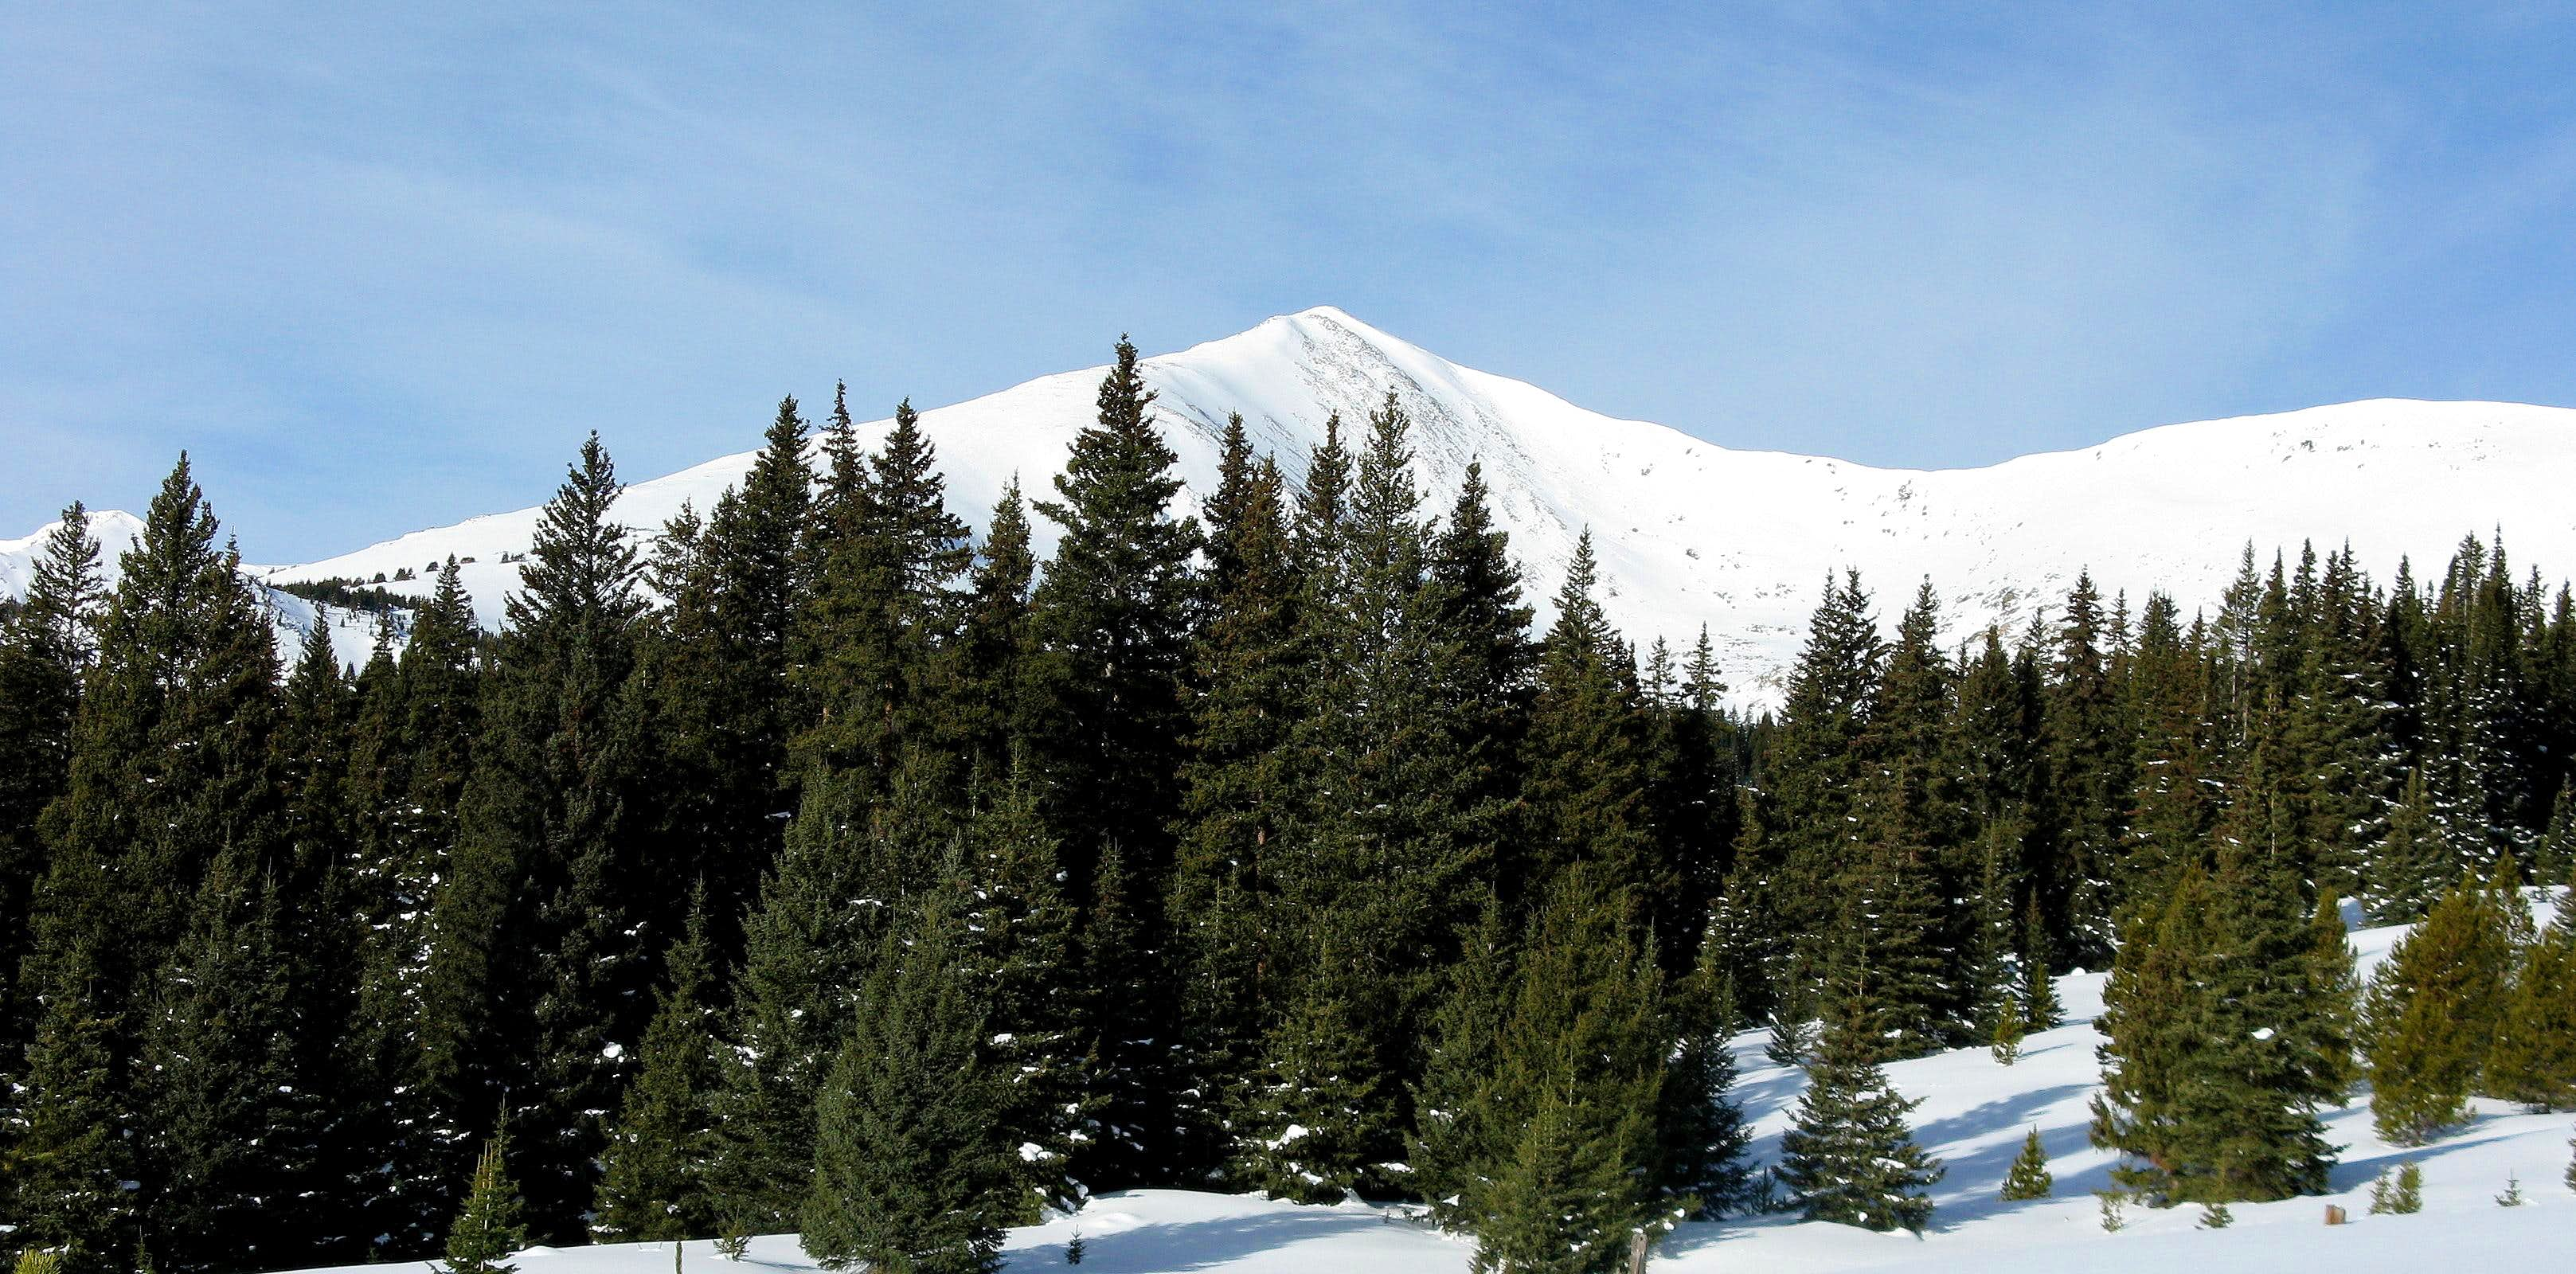 Homestake Peak: Is This Really Winter?